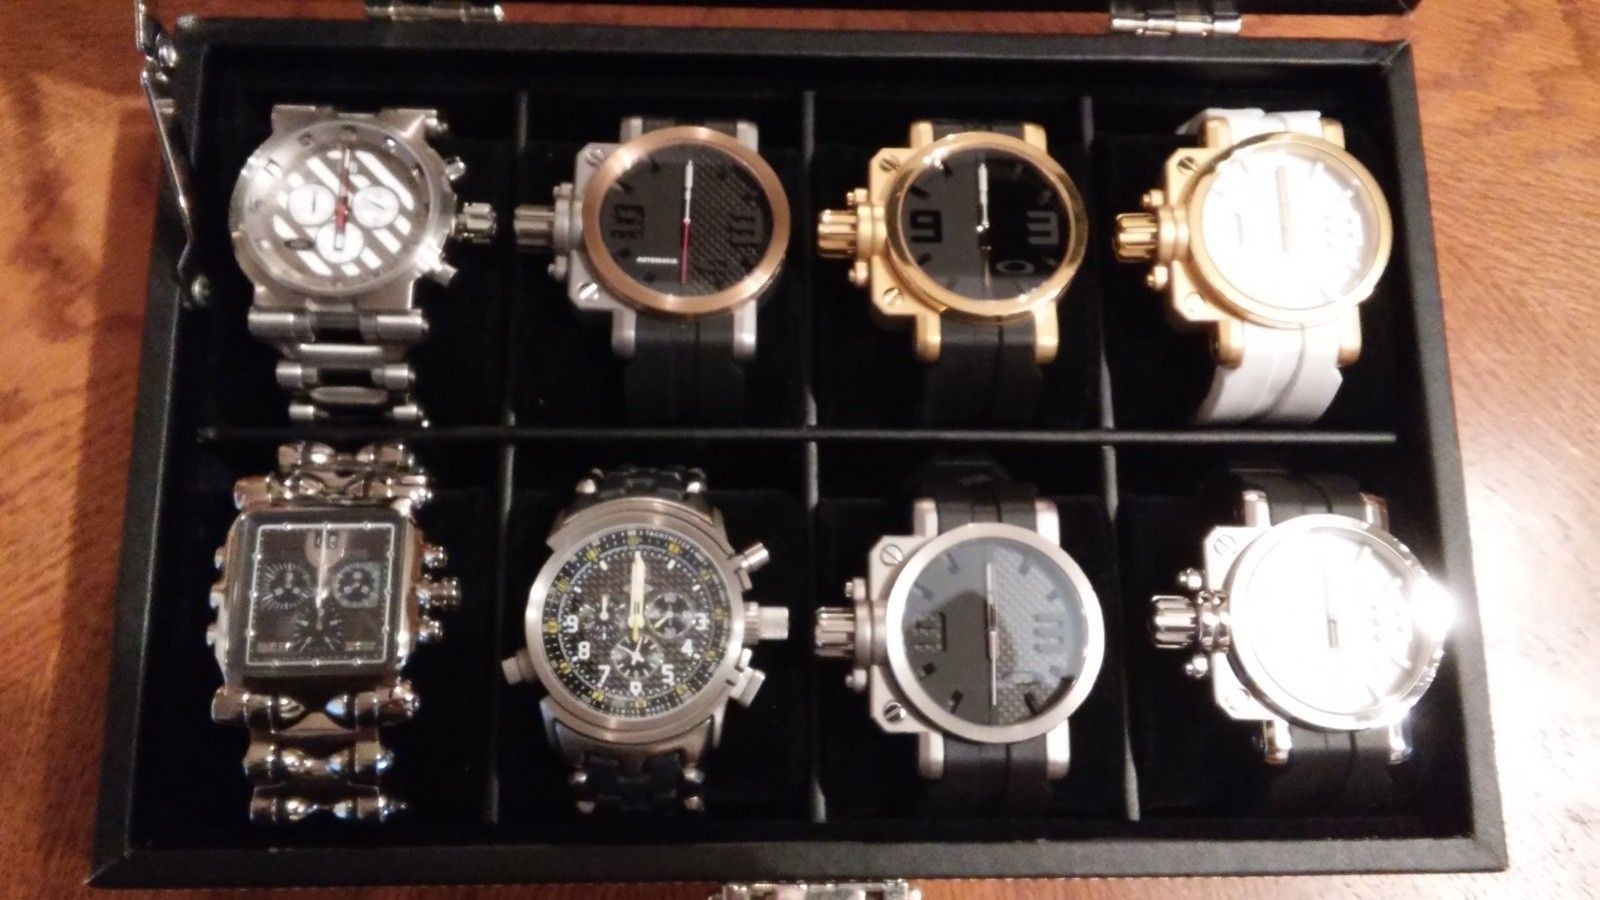 Watch collectioncollection - 20150309_115806_HDR.jpg